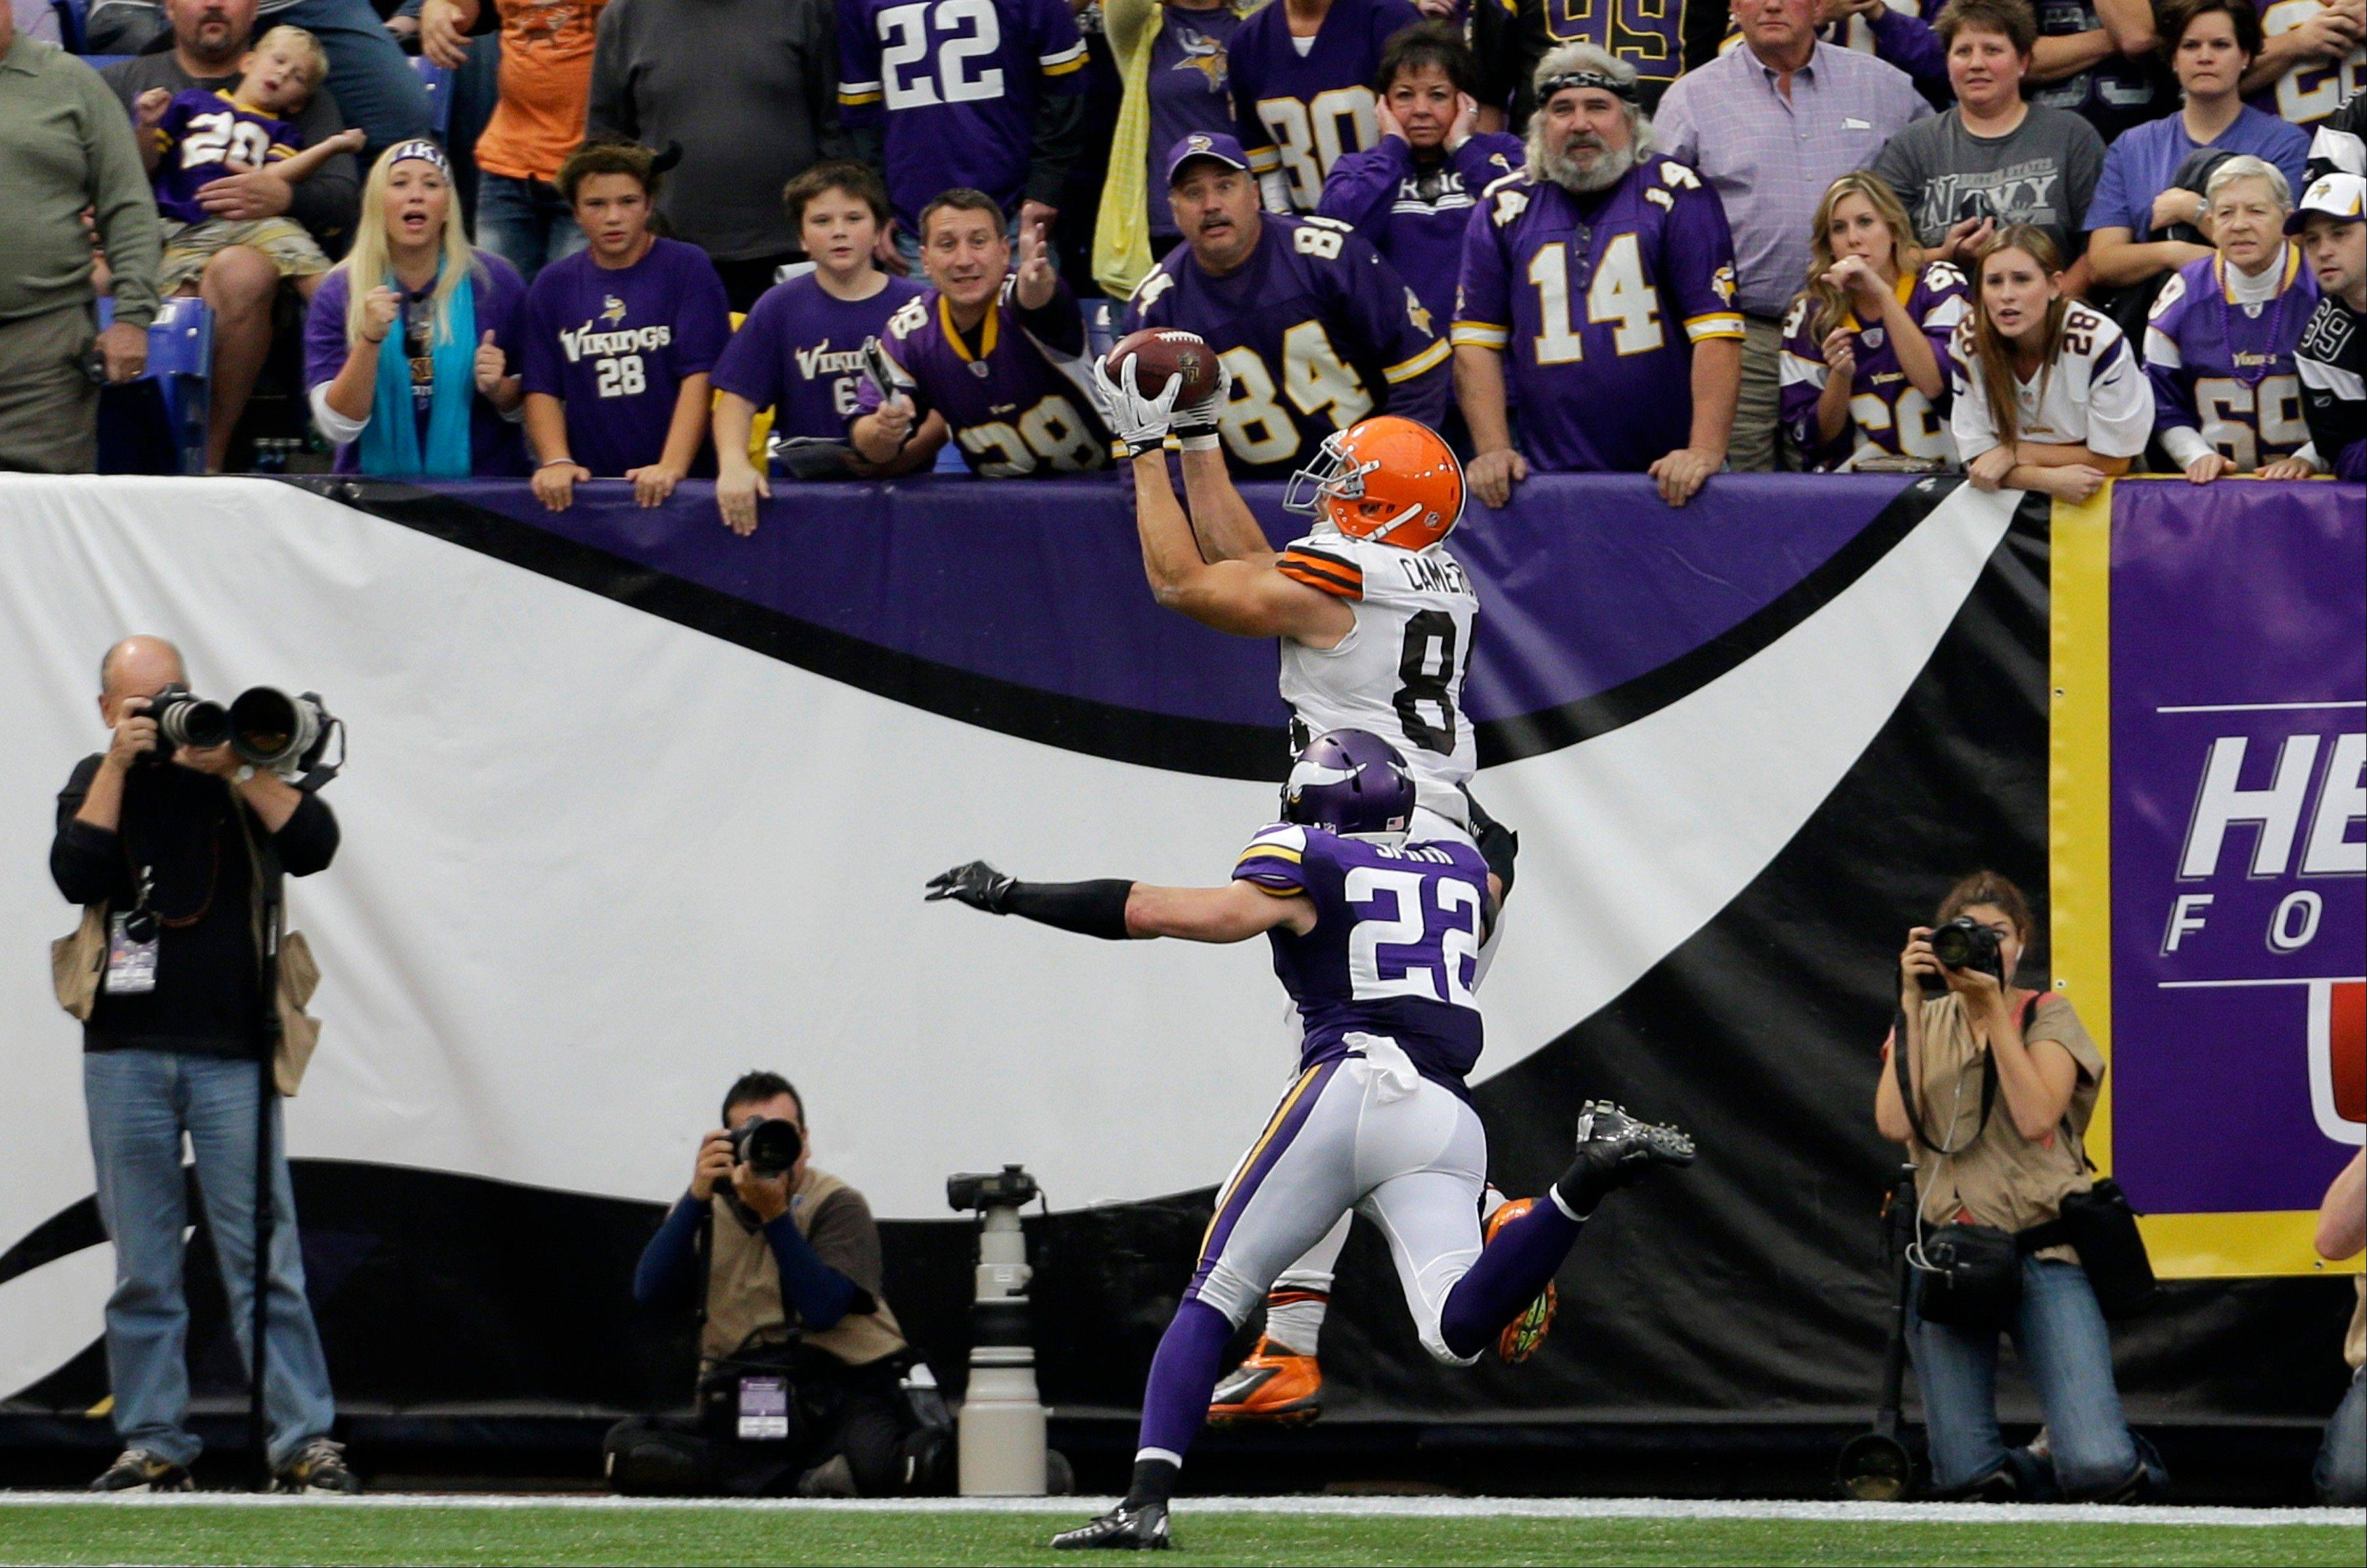 Cleveland Browns tight end Jordan Cameron, top, catches a 7-yard touchdown pass over Minnesota Vikings free safety Harrison Smith (22) during the second half of an NFL football game Sunday, Sept. 22, 2013, in Minneapolis. The Browns won 31-27.